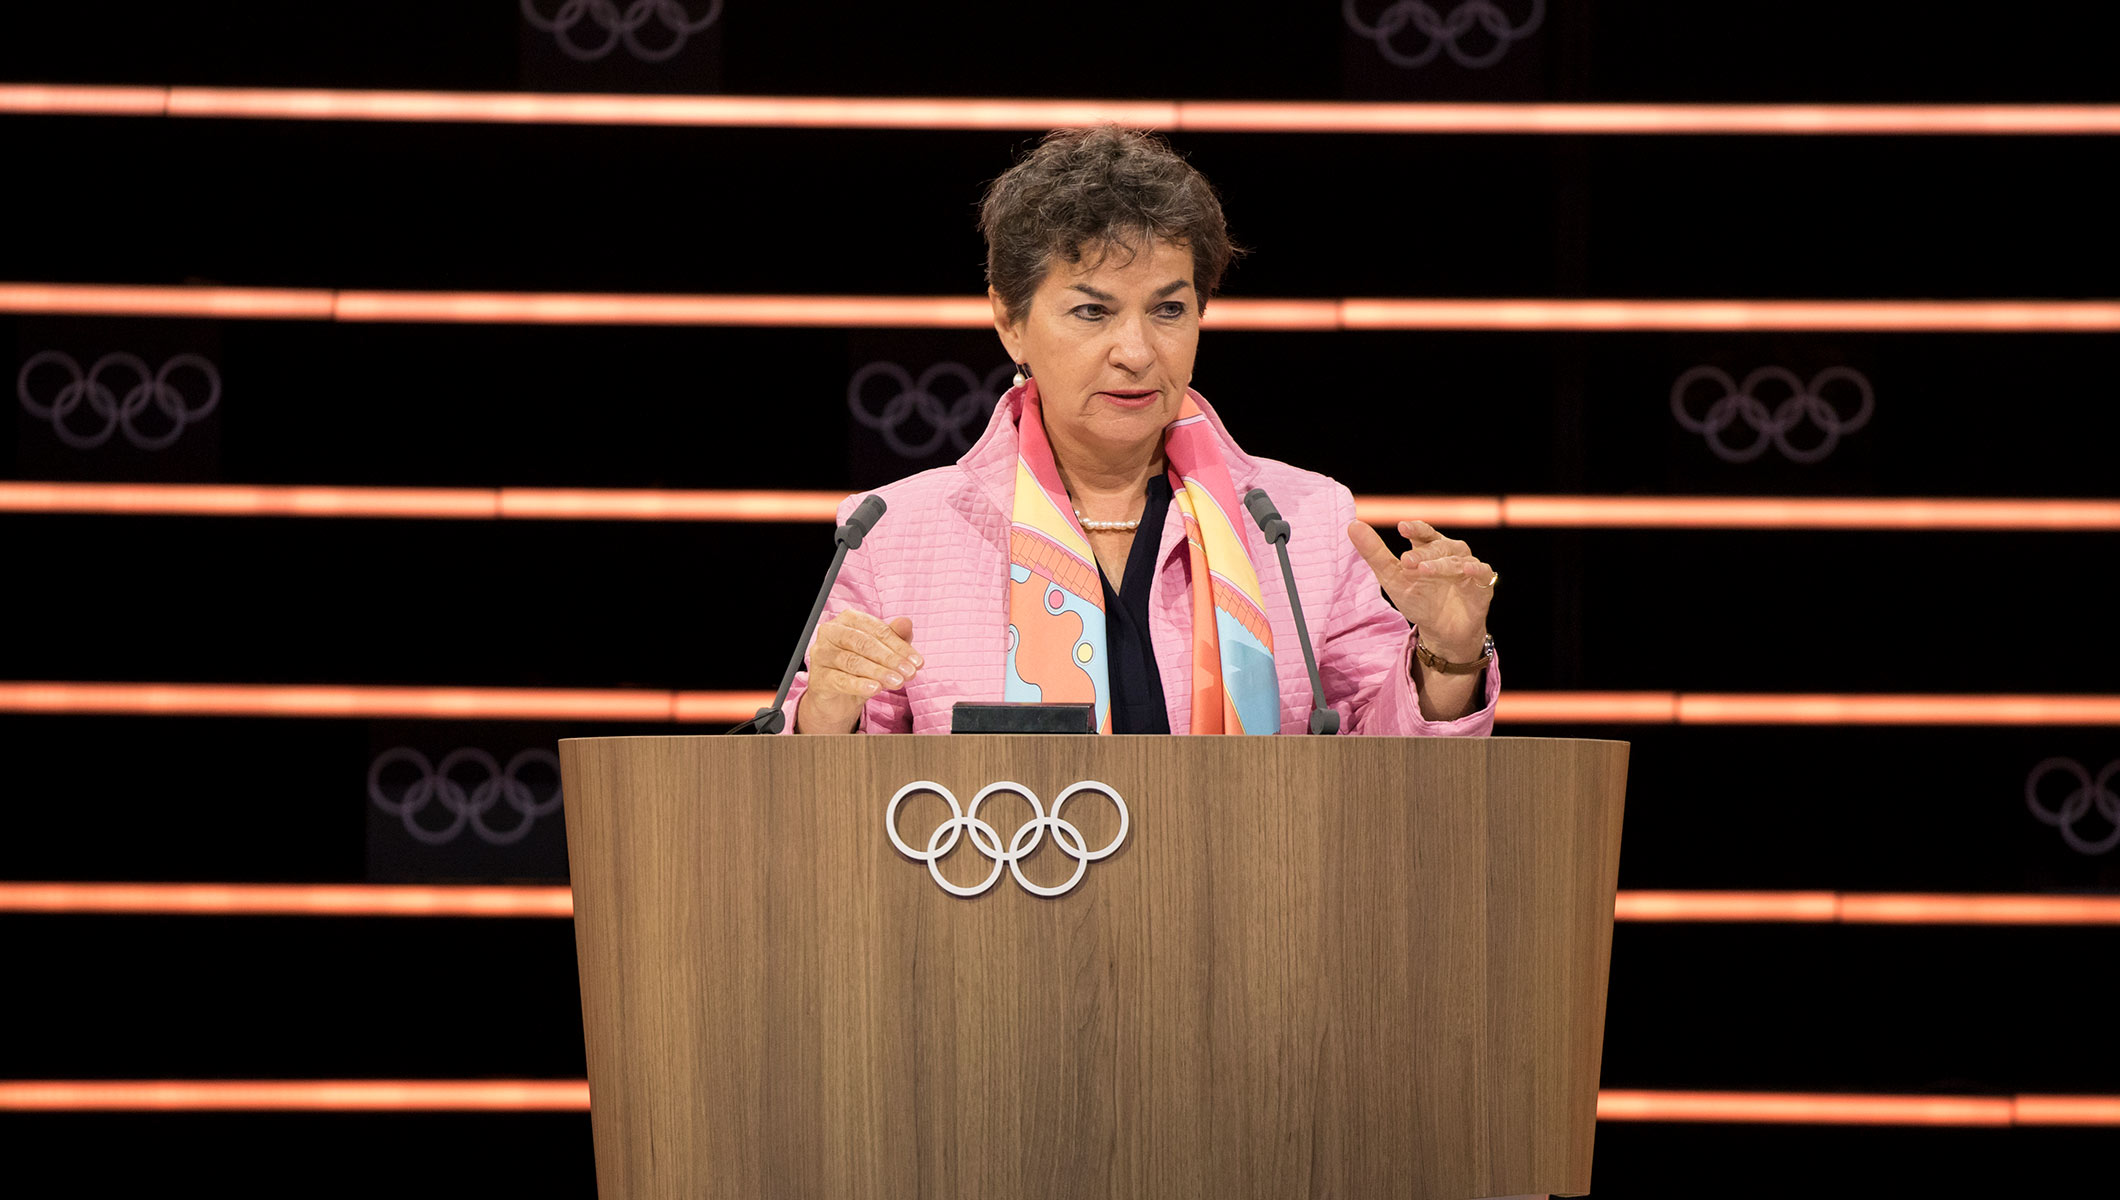 Keynote speech by Christiana Figueres, Former Executive Secretary of the United Nations framework Convention on Climate Change